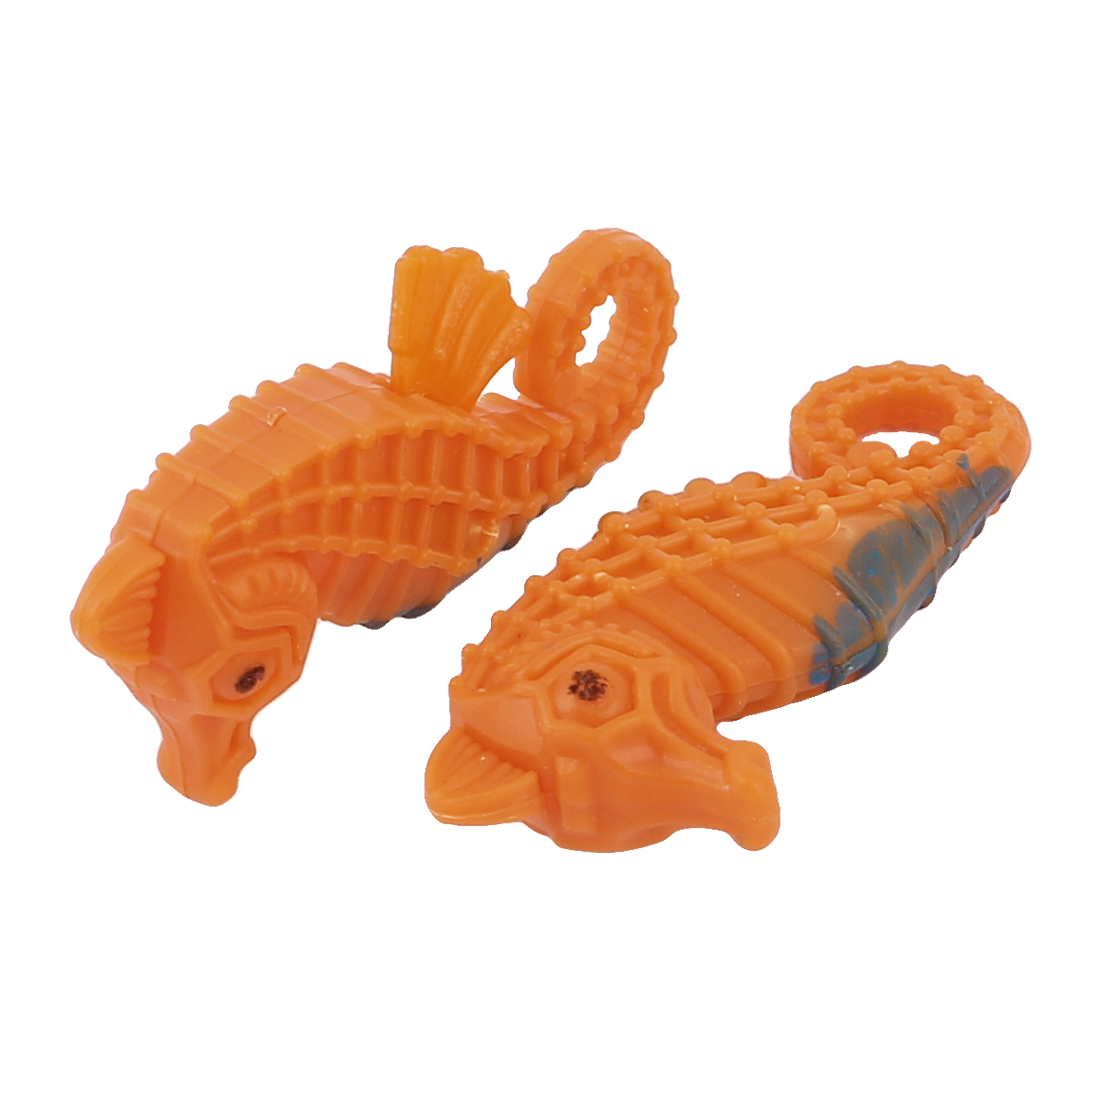 2 Pcs Orange Plastic Floating Aquarium Fish Tank Seahorse Sea Horse Ornament